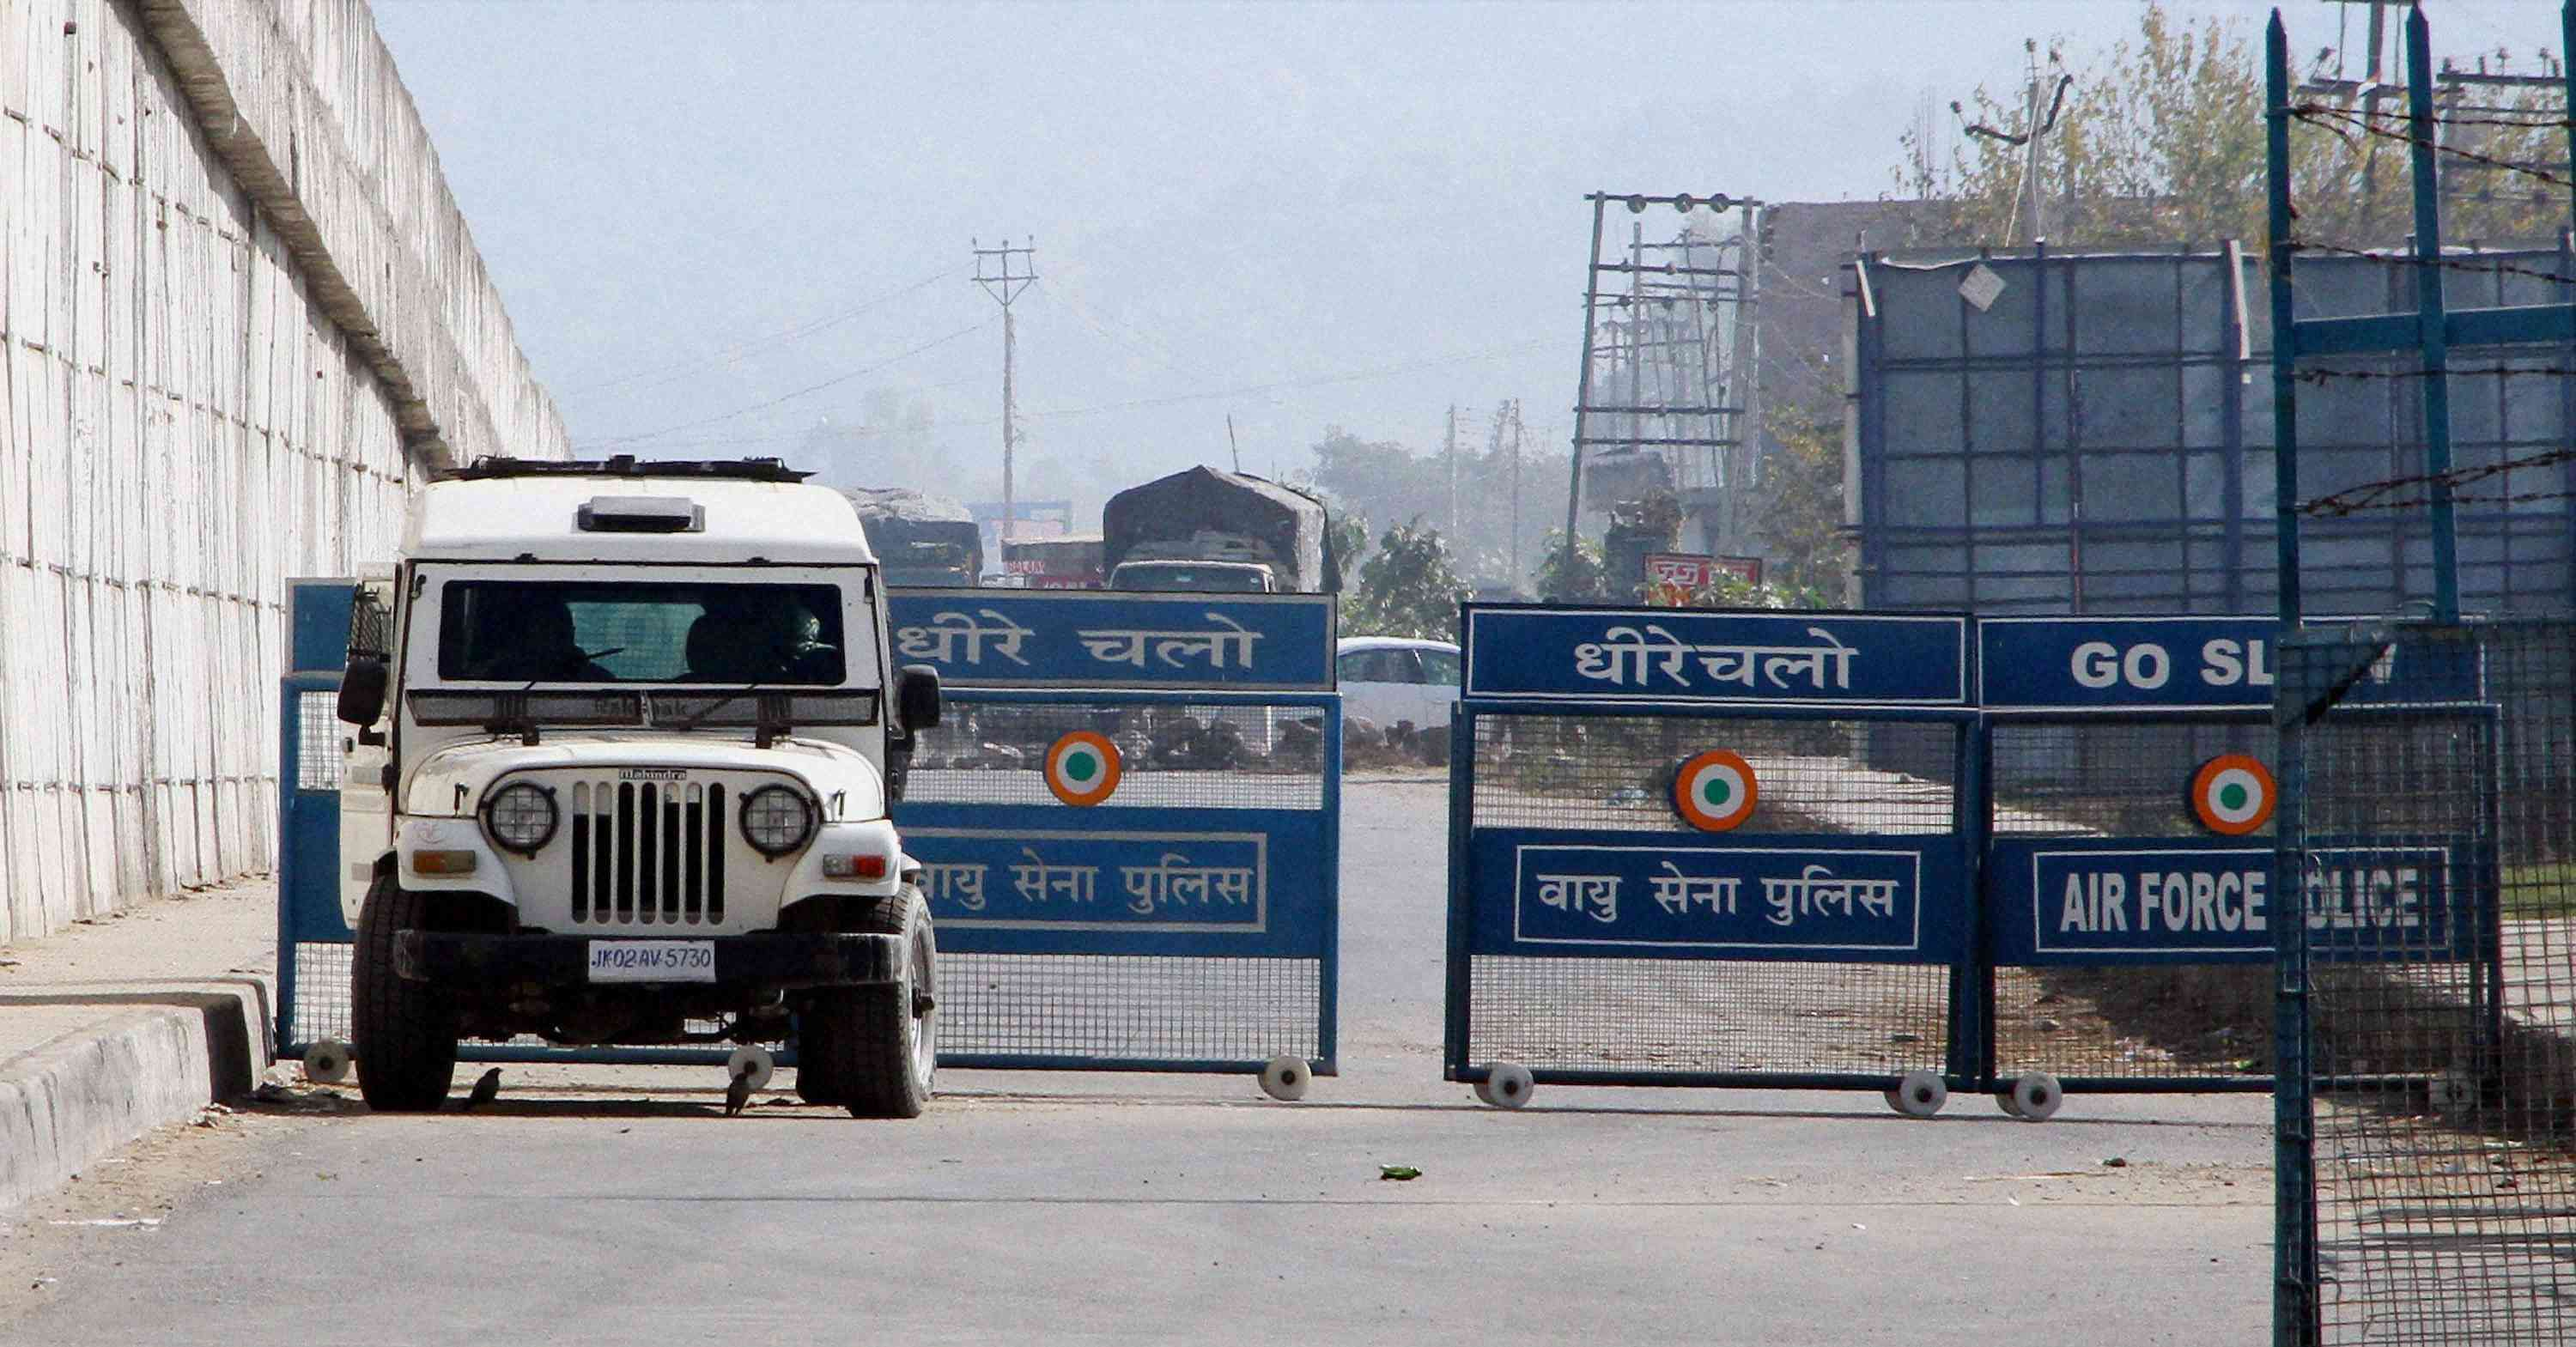 An Indian Air Force base in Pathankot was attacked by militants in Pathankot, Punjab in 2016.  (Photo credit: PTI)